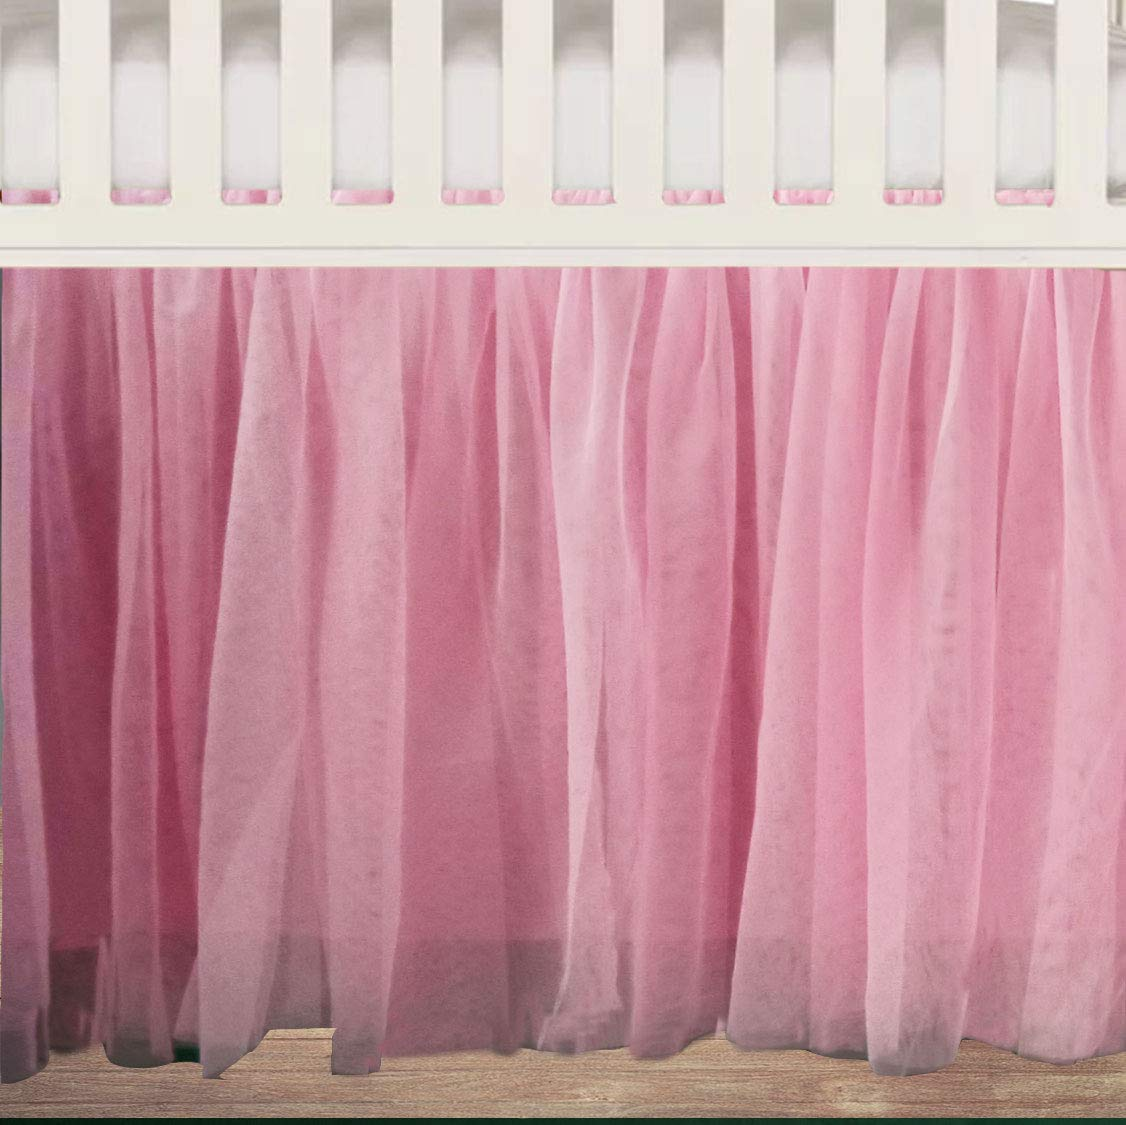 White Tulle Ruffled Lined Crib Skirt 16 Inch Drop 3 Sided